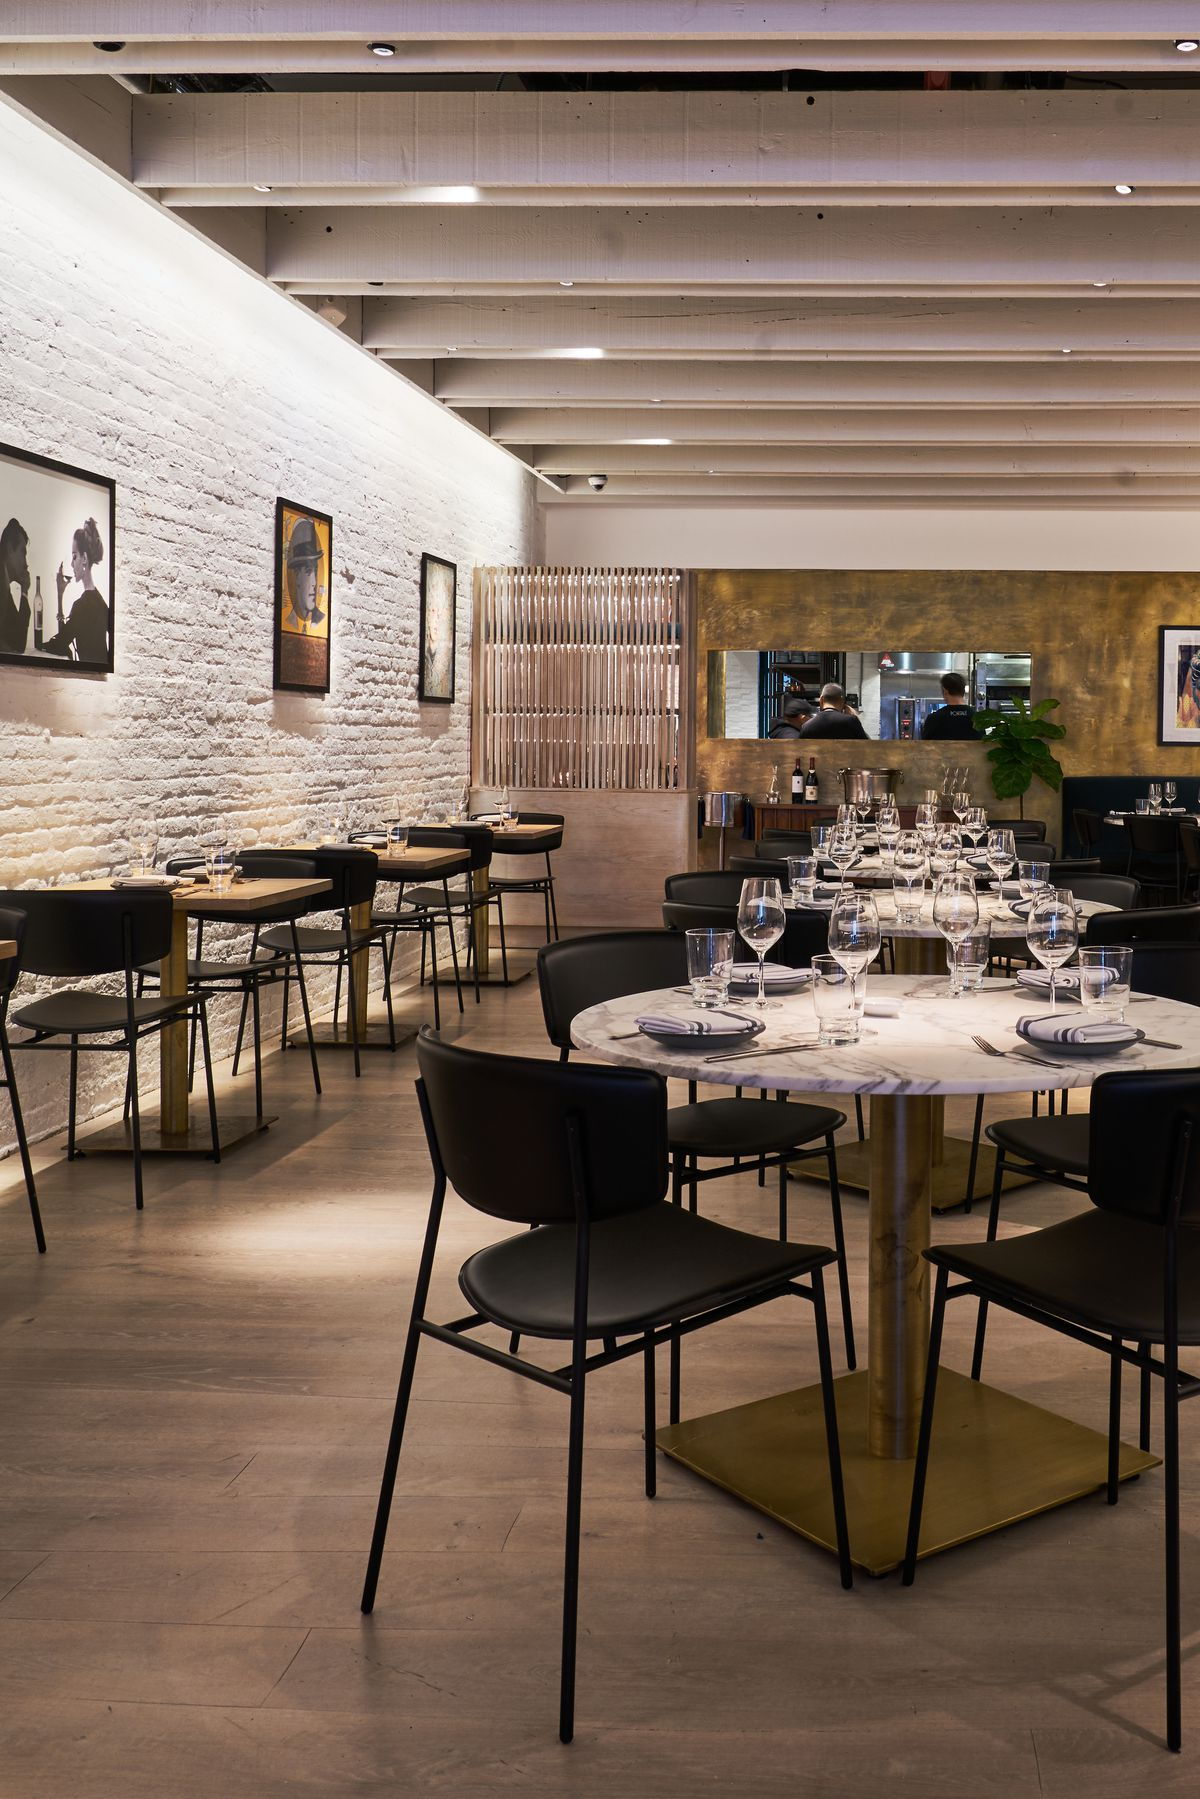 Rows of white tables with black chairs next to a white exposed brick wall